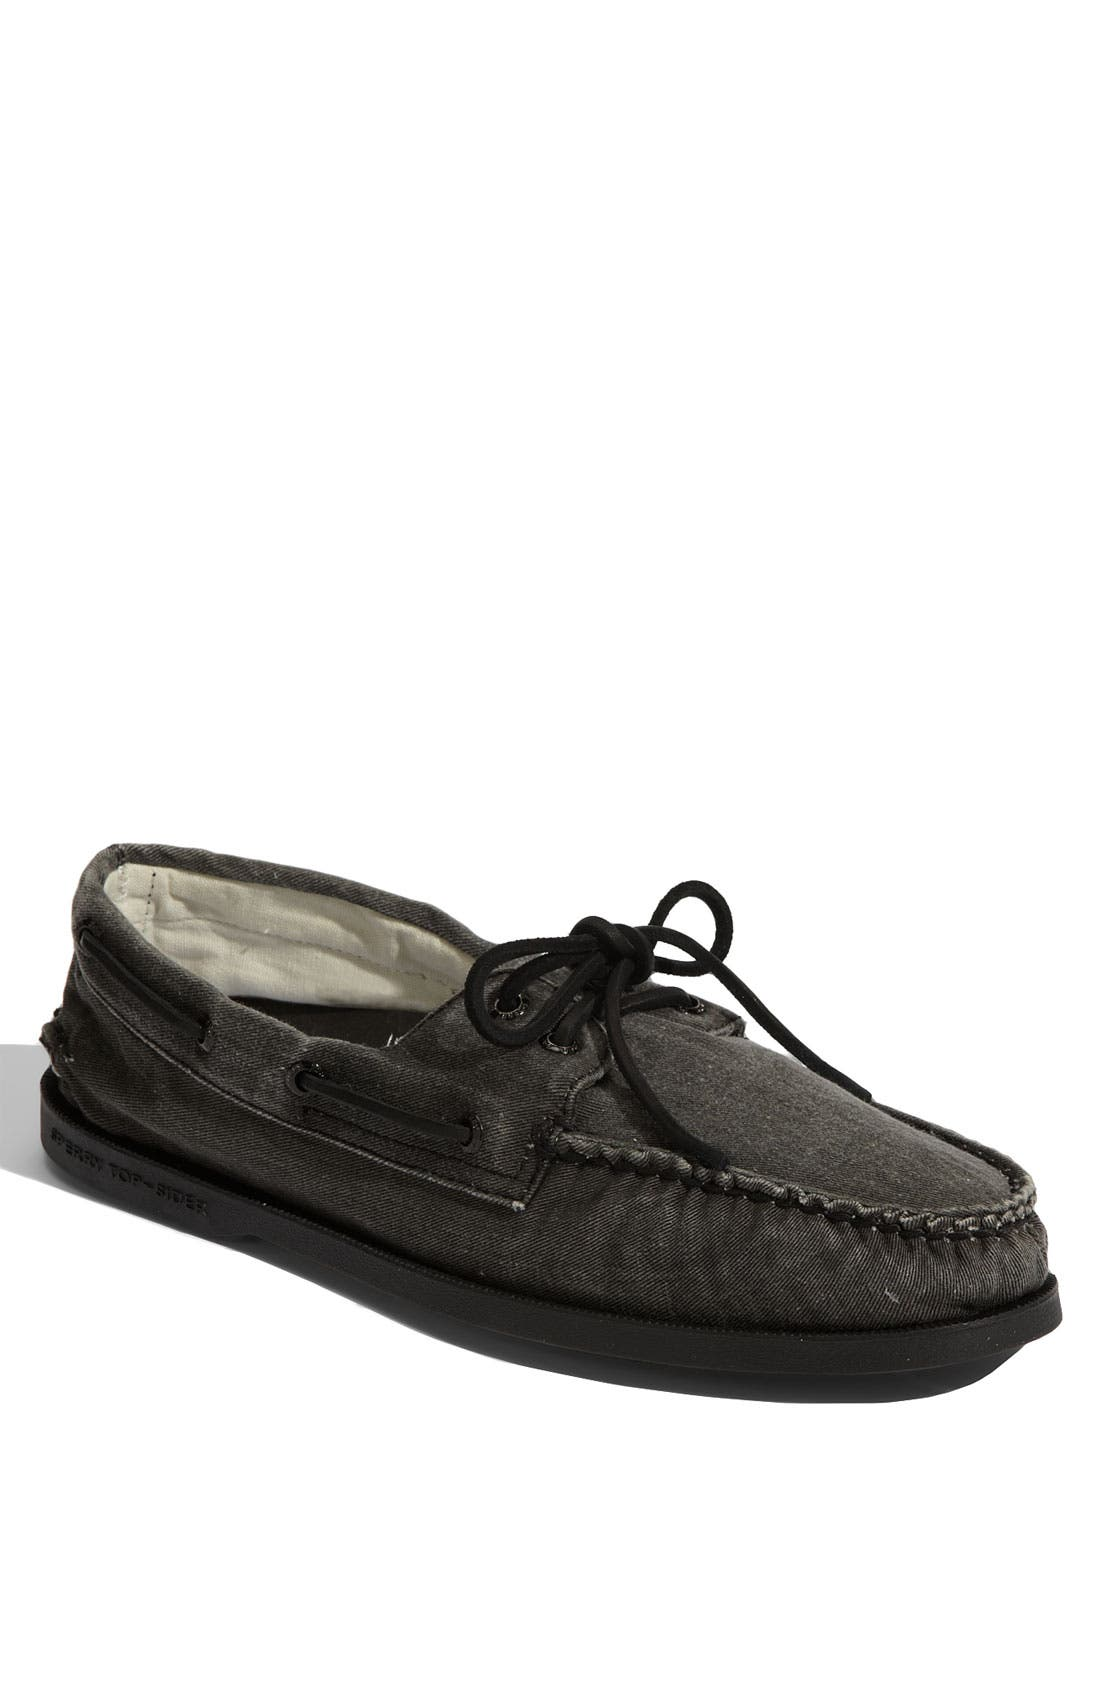 Alternate Image 1 Selected - Sperry Top-Sider® 'Authentic Original' Canvas Boat Shoe (Men)